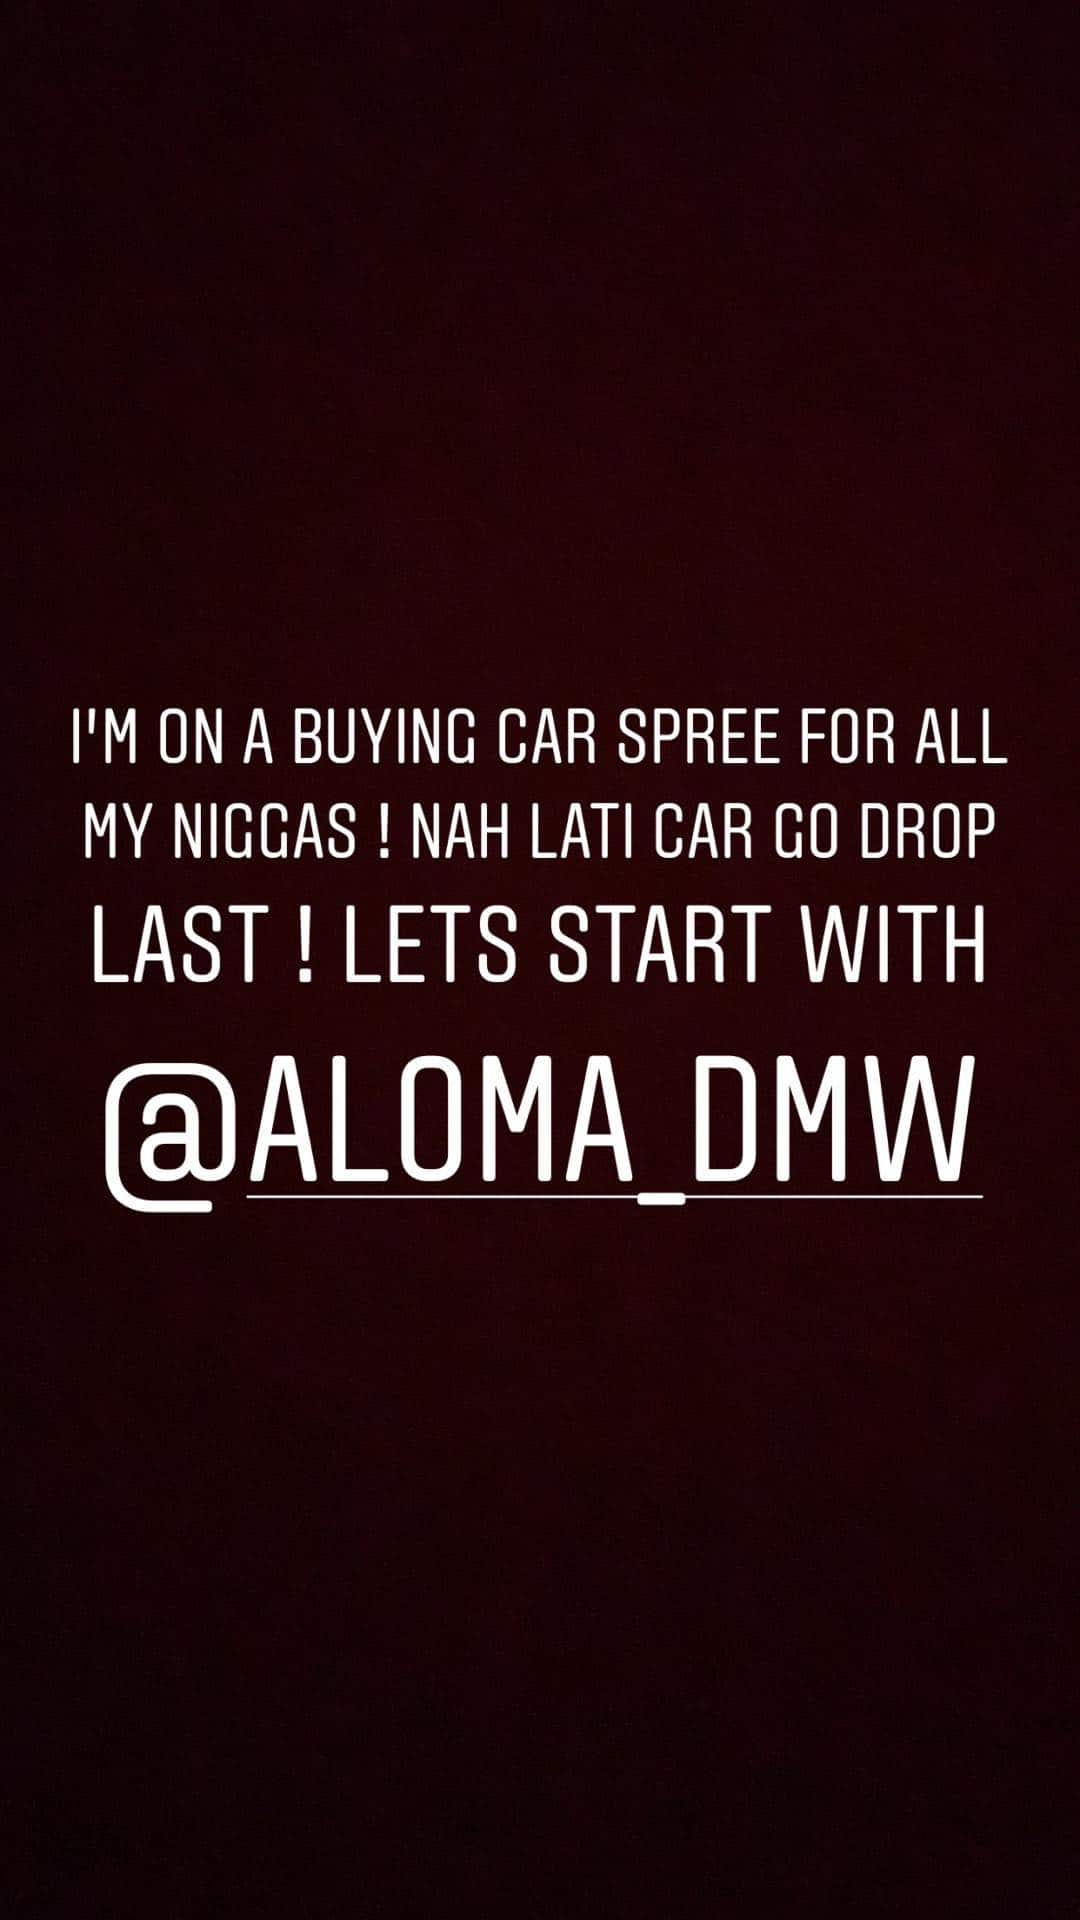 Davido gifts out Benz to one of his crew members, vows to buy cars for the rest of the team